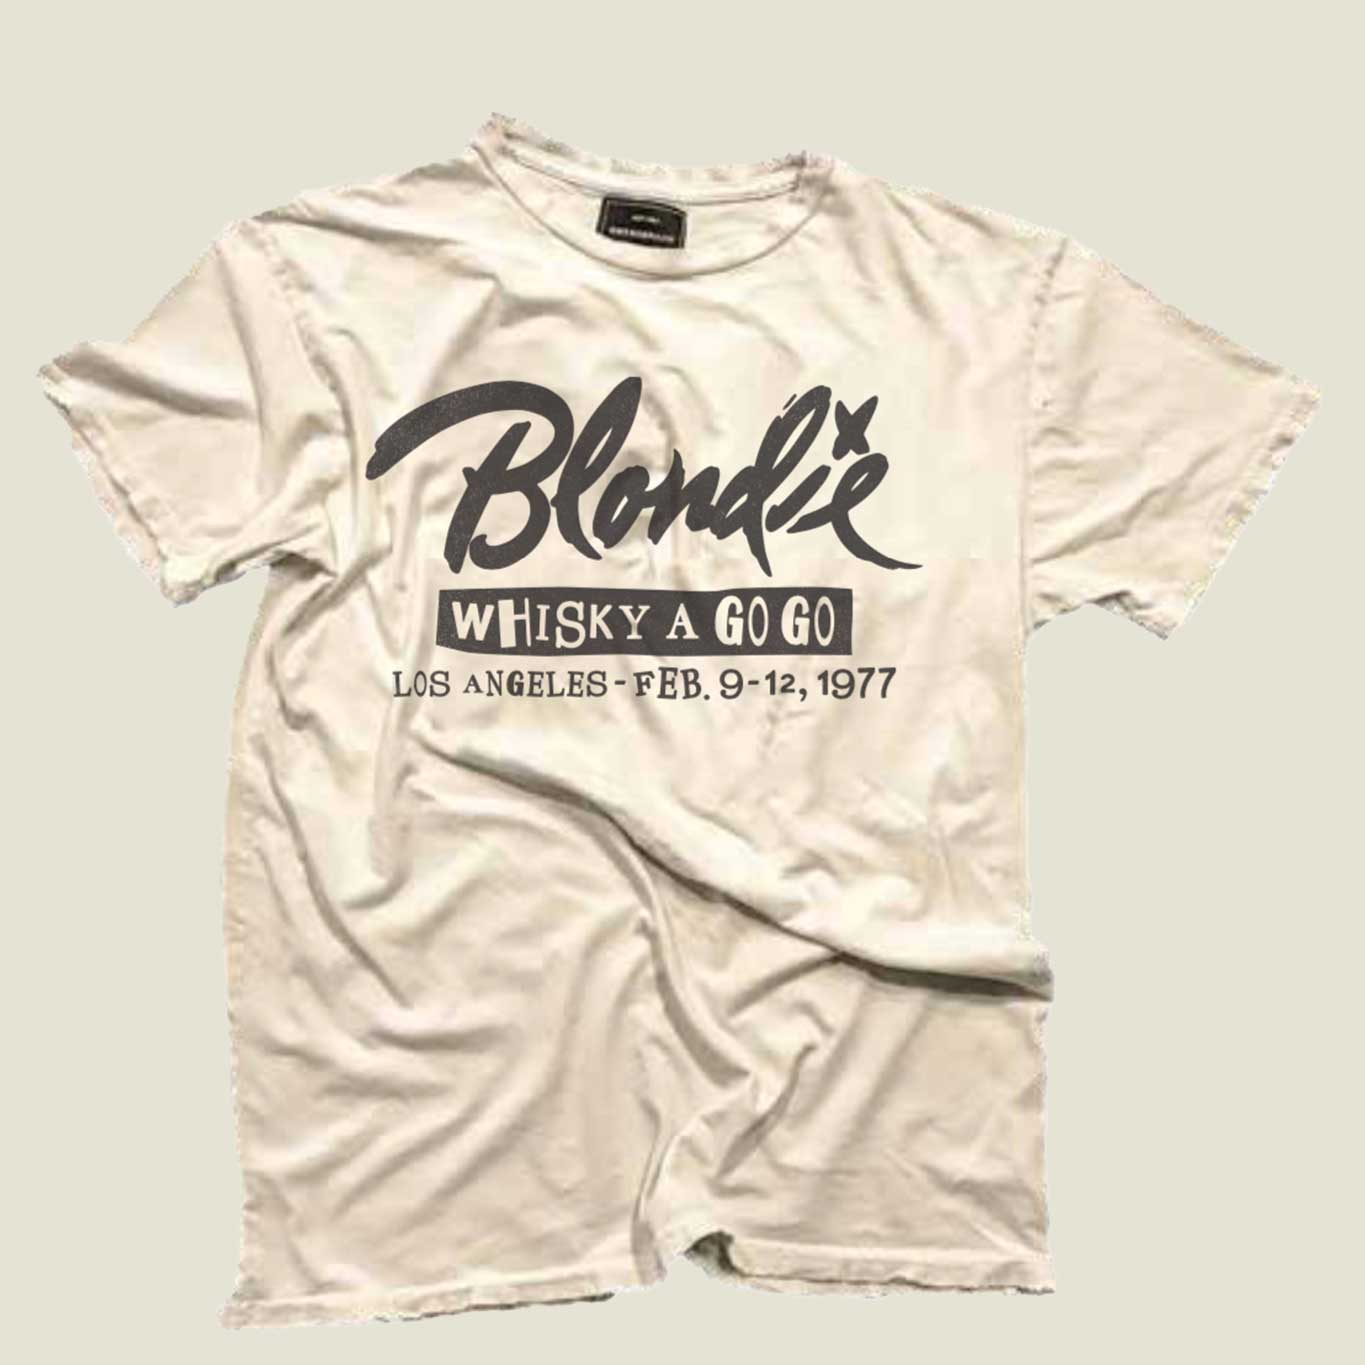 Blondie Whisky - Blackbird General Store